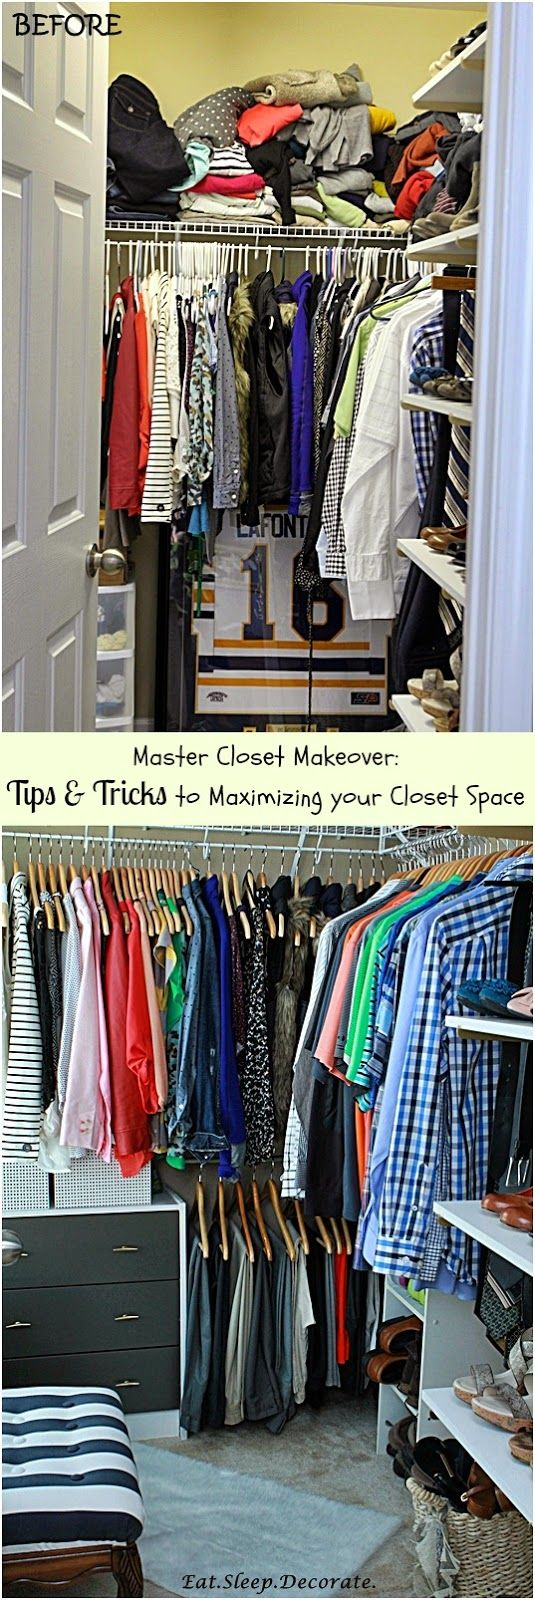 Master Closet Organization- Tips & Tricks on how to maximize closet space! (Before & After)